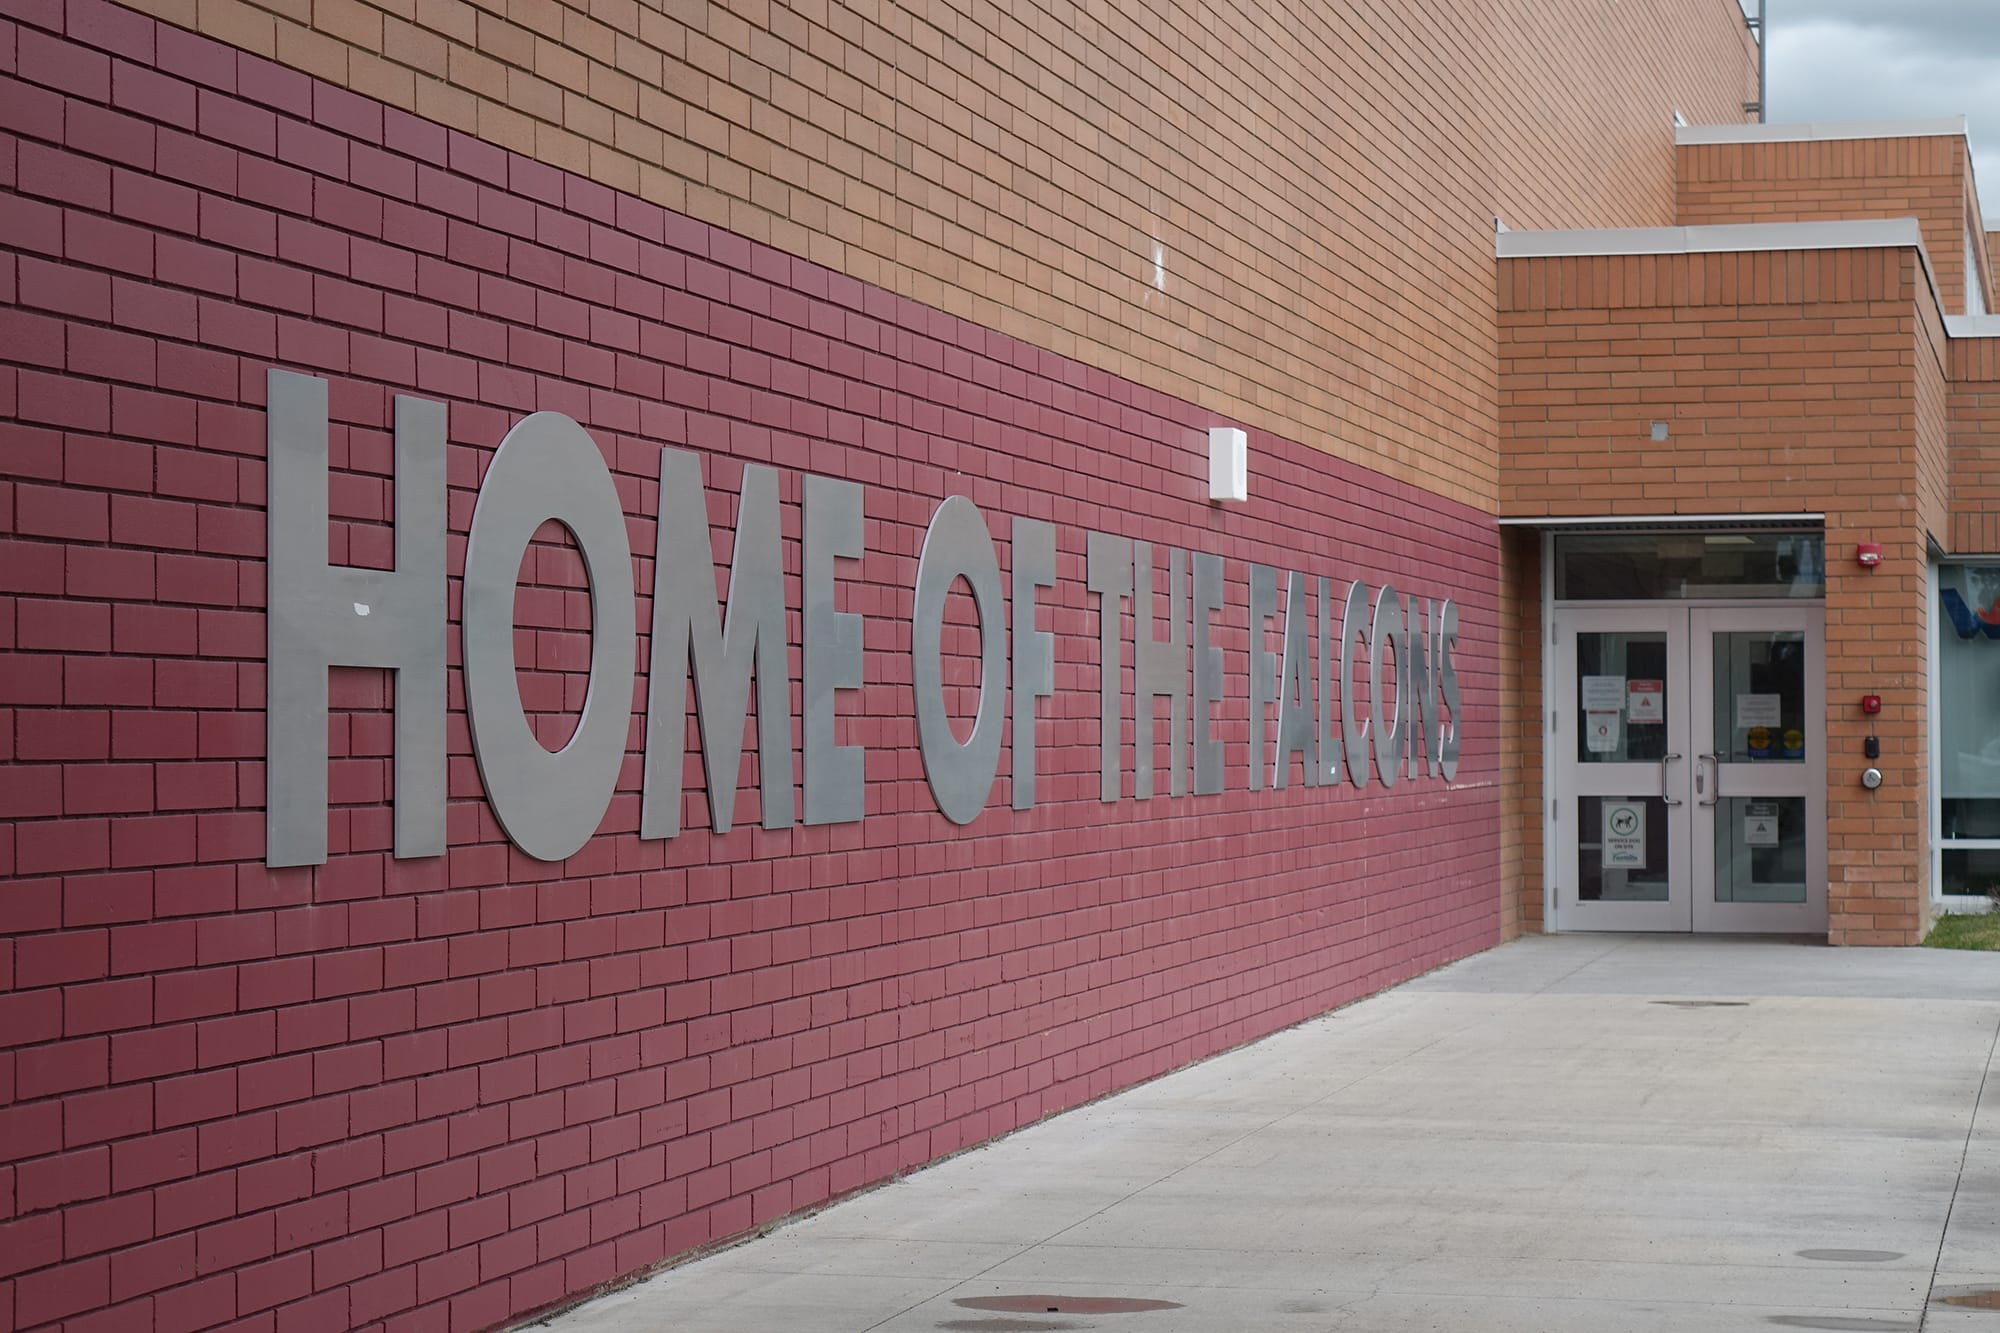 Foothills Composite High School wall with home of the Falcons